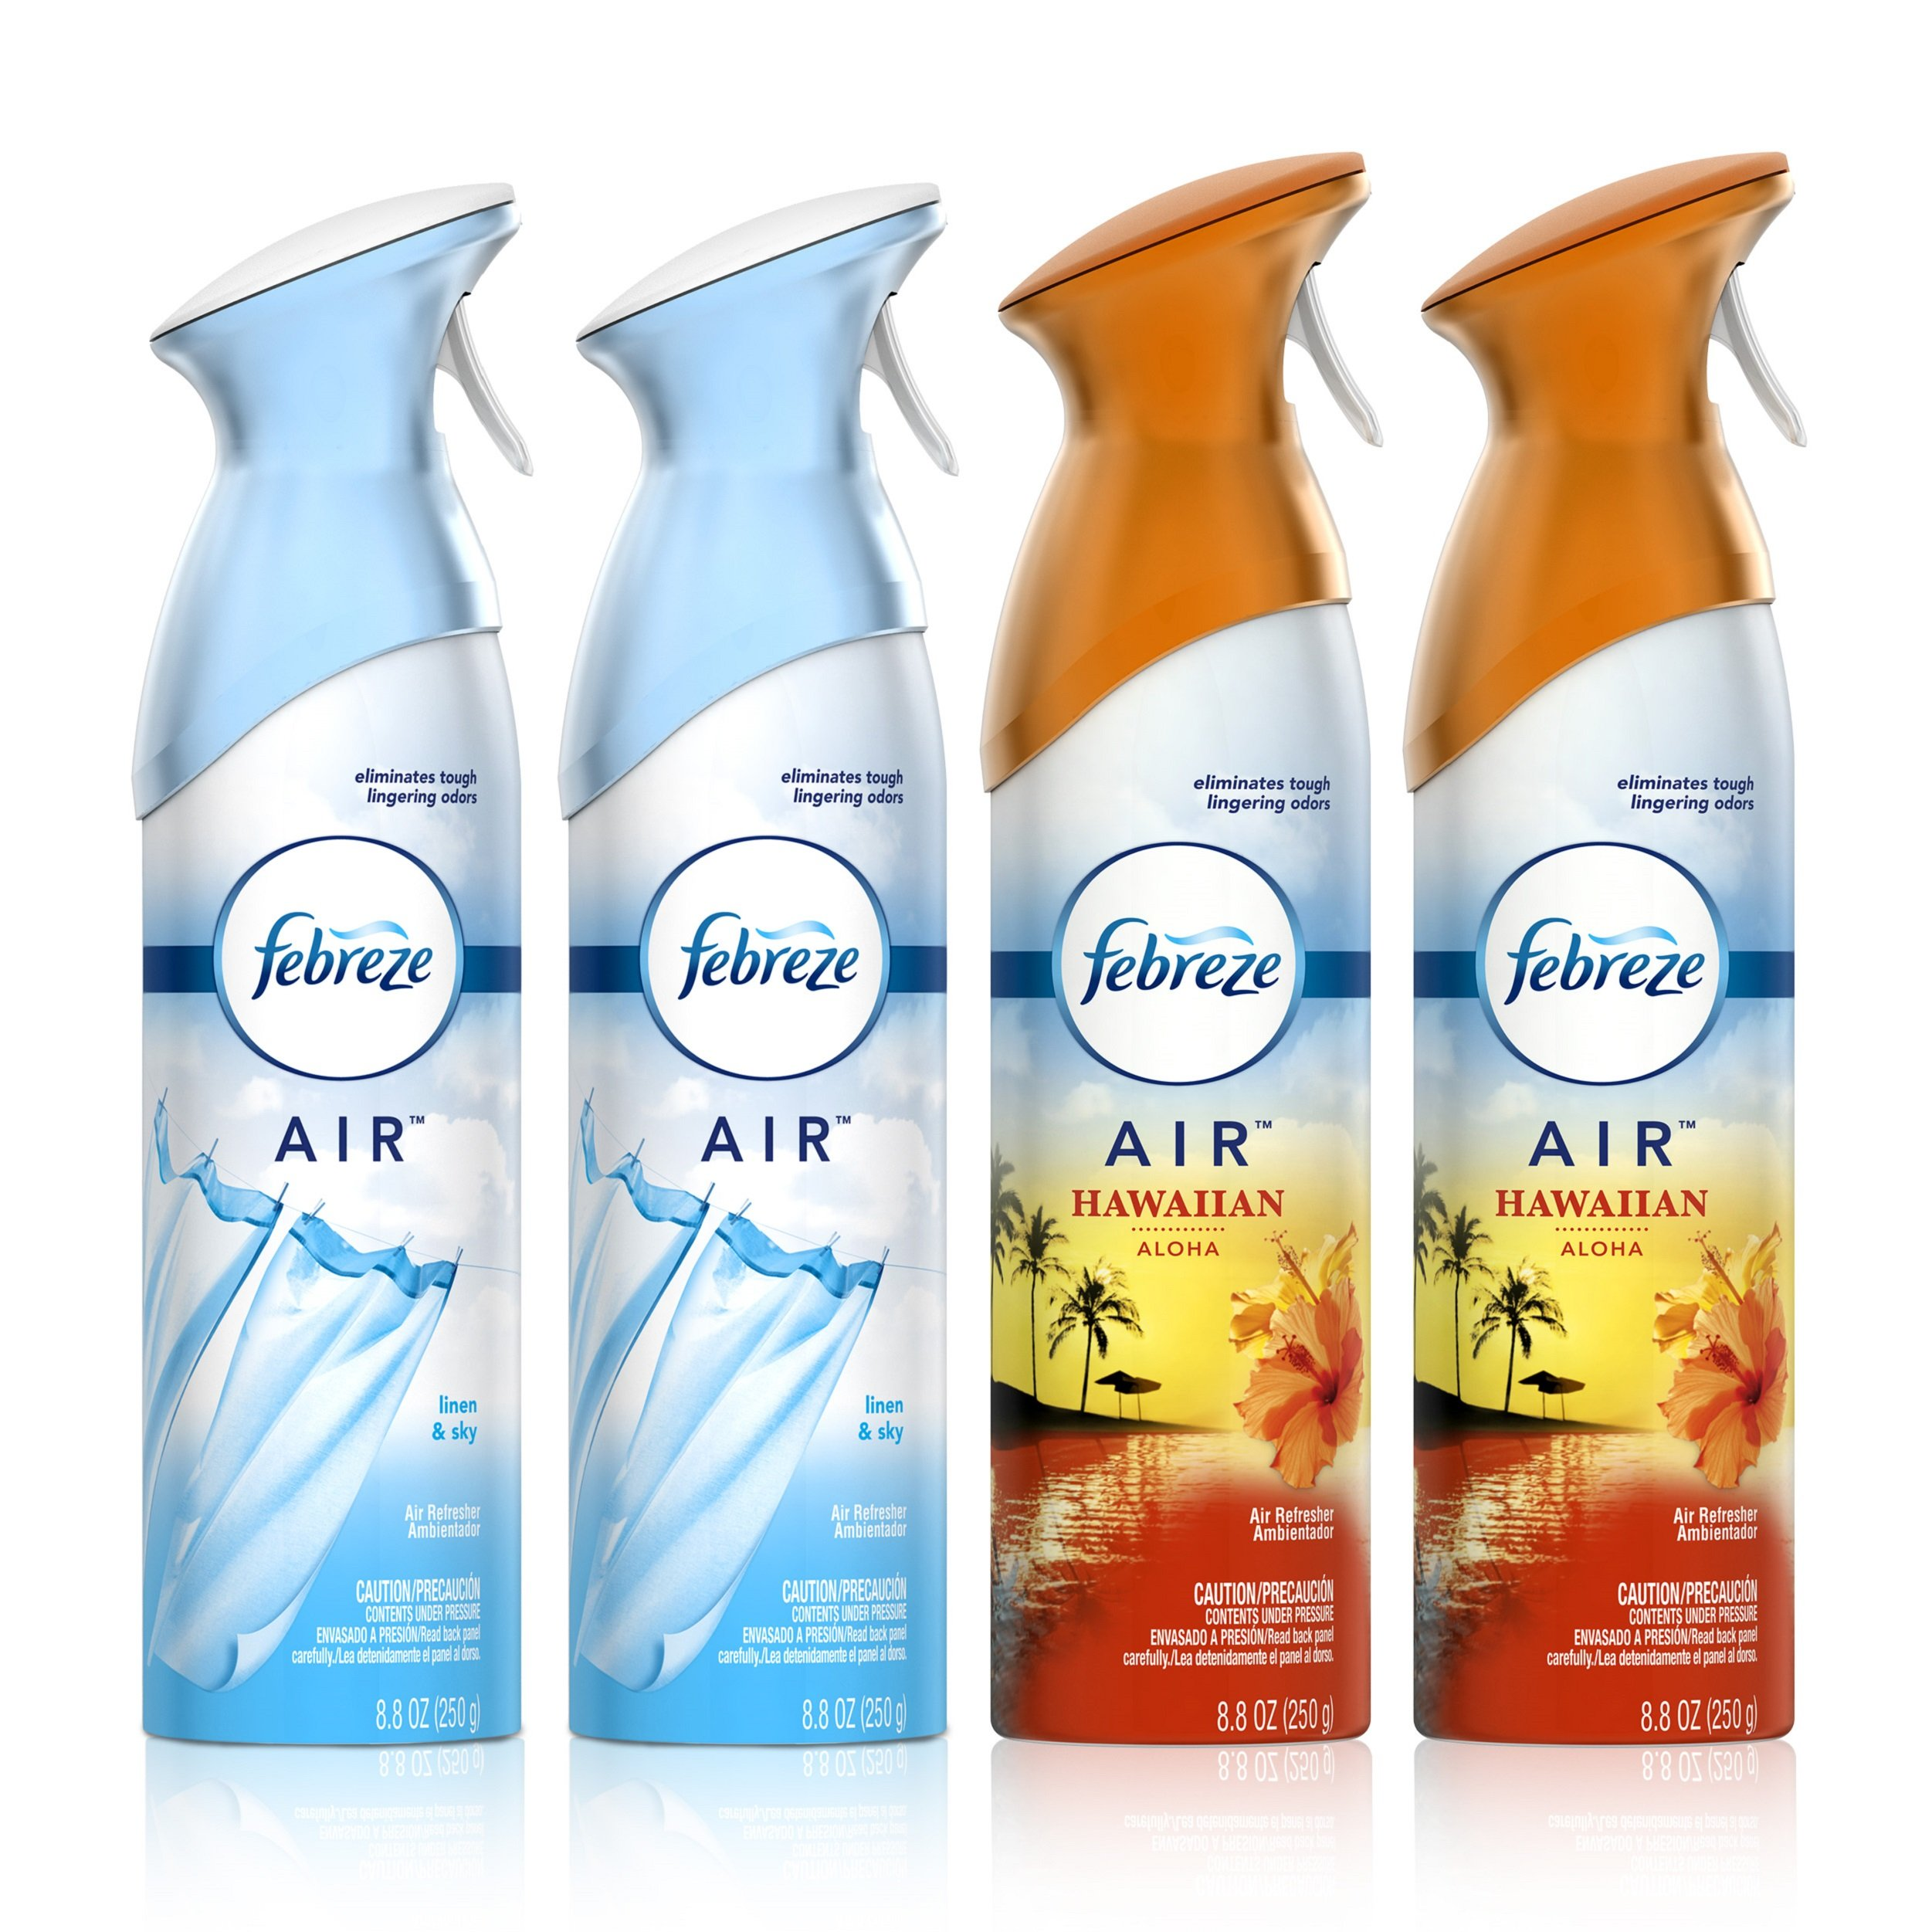 Febreze Air Freshener and Odor Eliminator Spray, Linen & Sky and Hawaiian Aloha Scents, 8.8oz (Pack of 4)